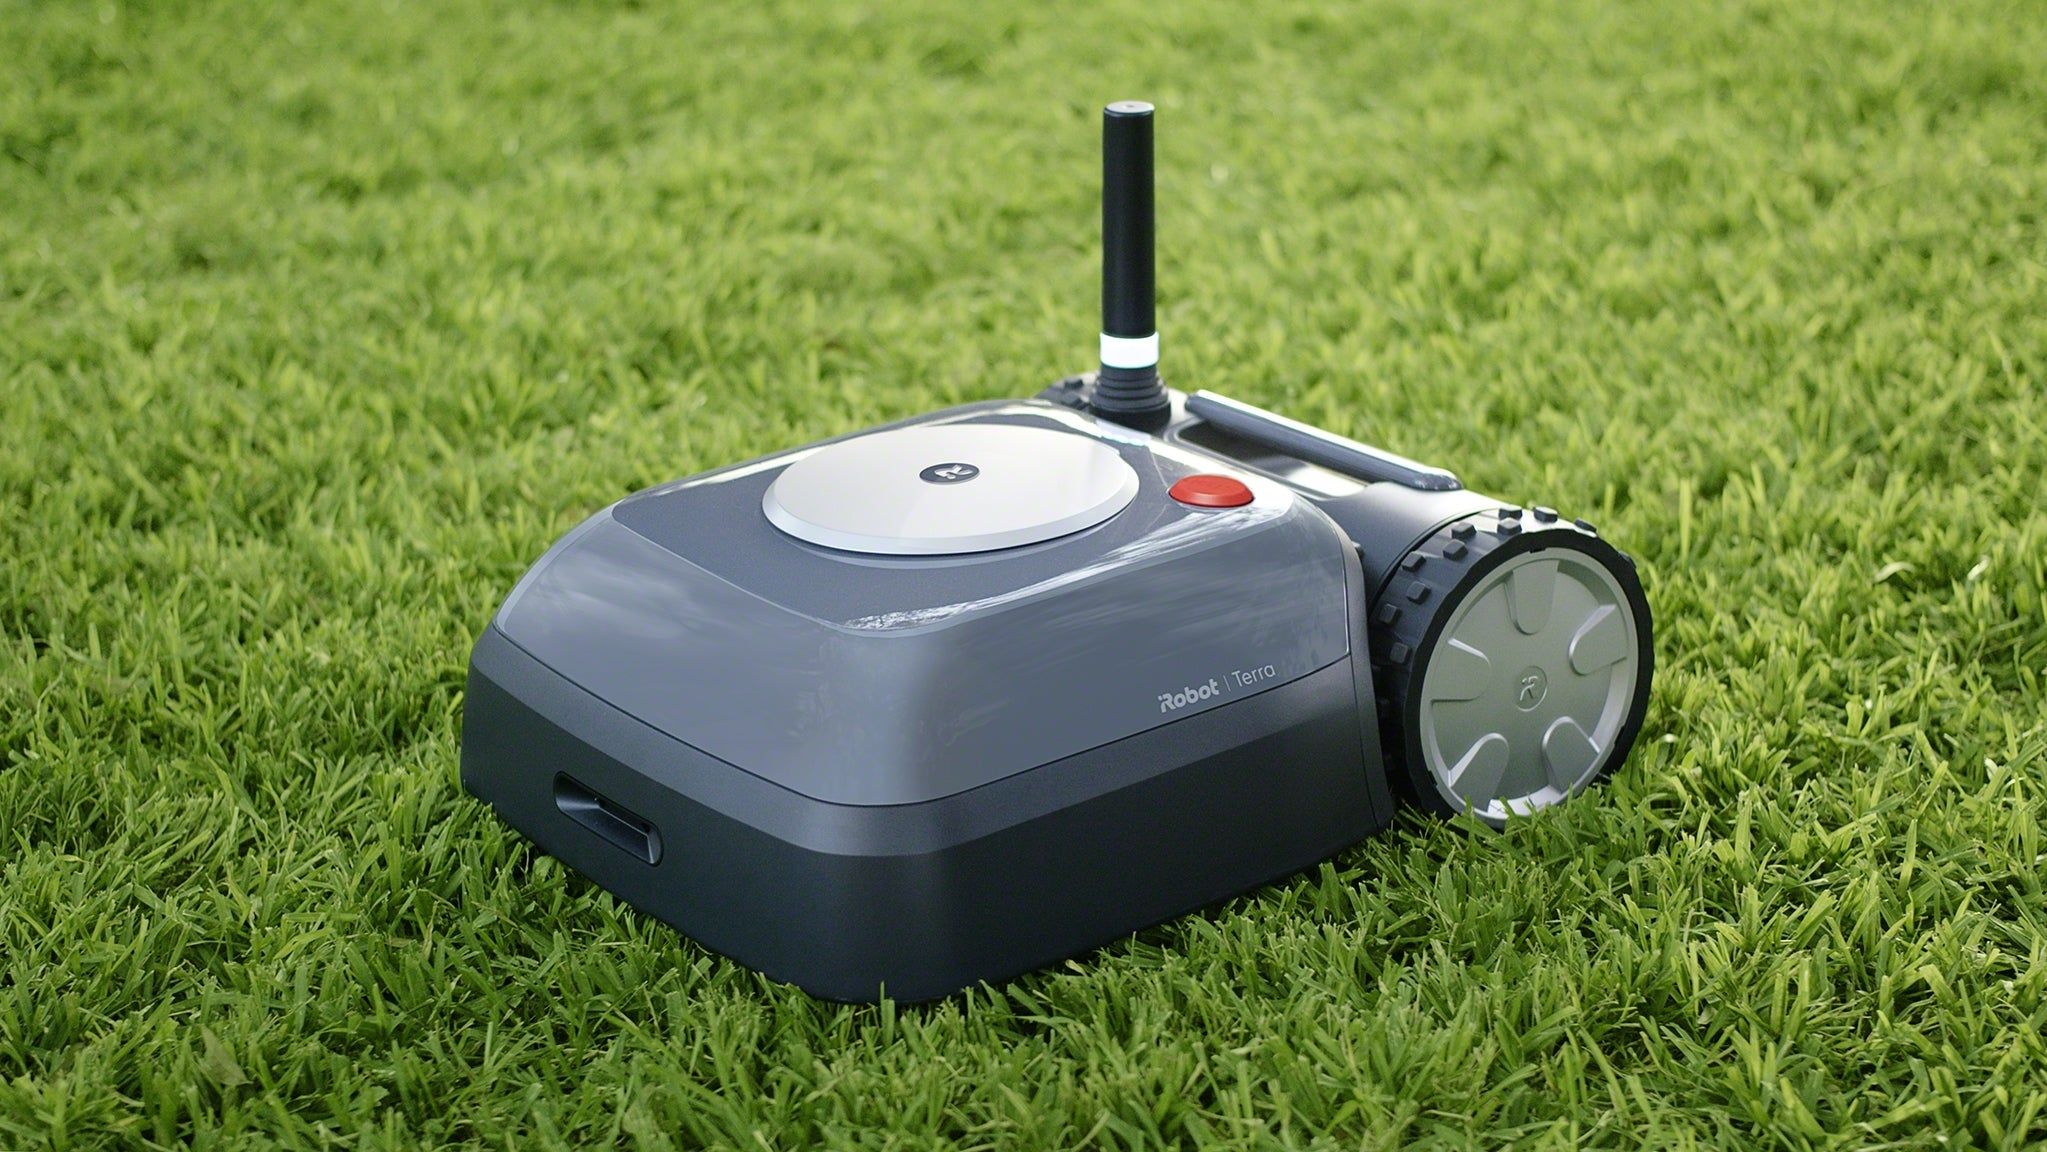 IRobot's New Robot Lawn Mower Sure Looks Like It Will Piss Off Your Neighbours